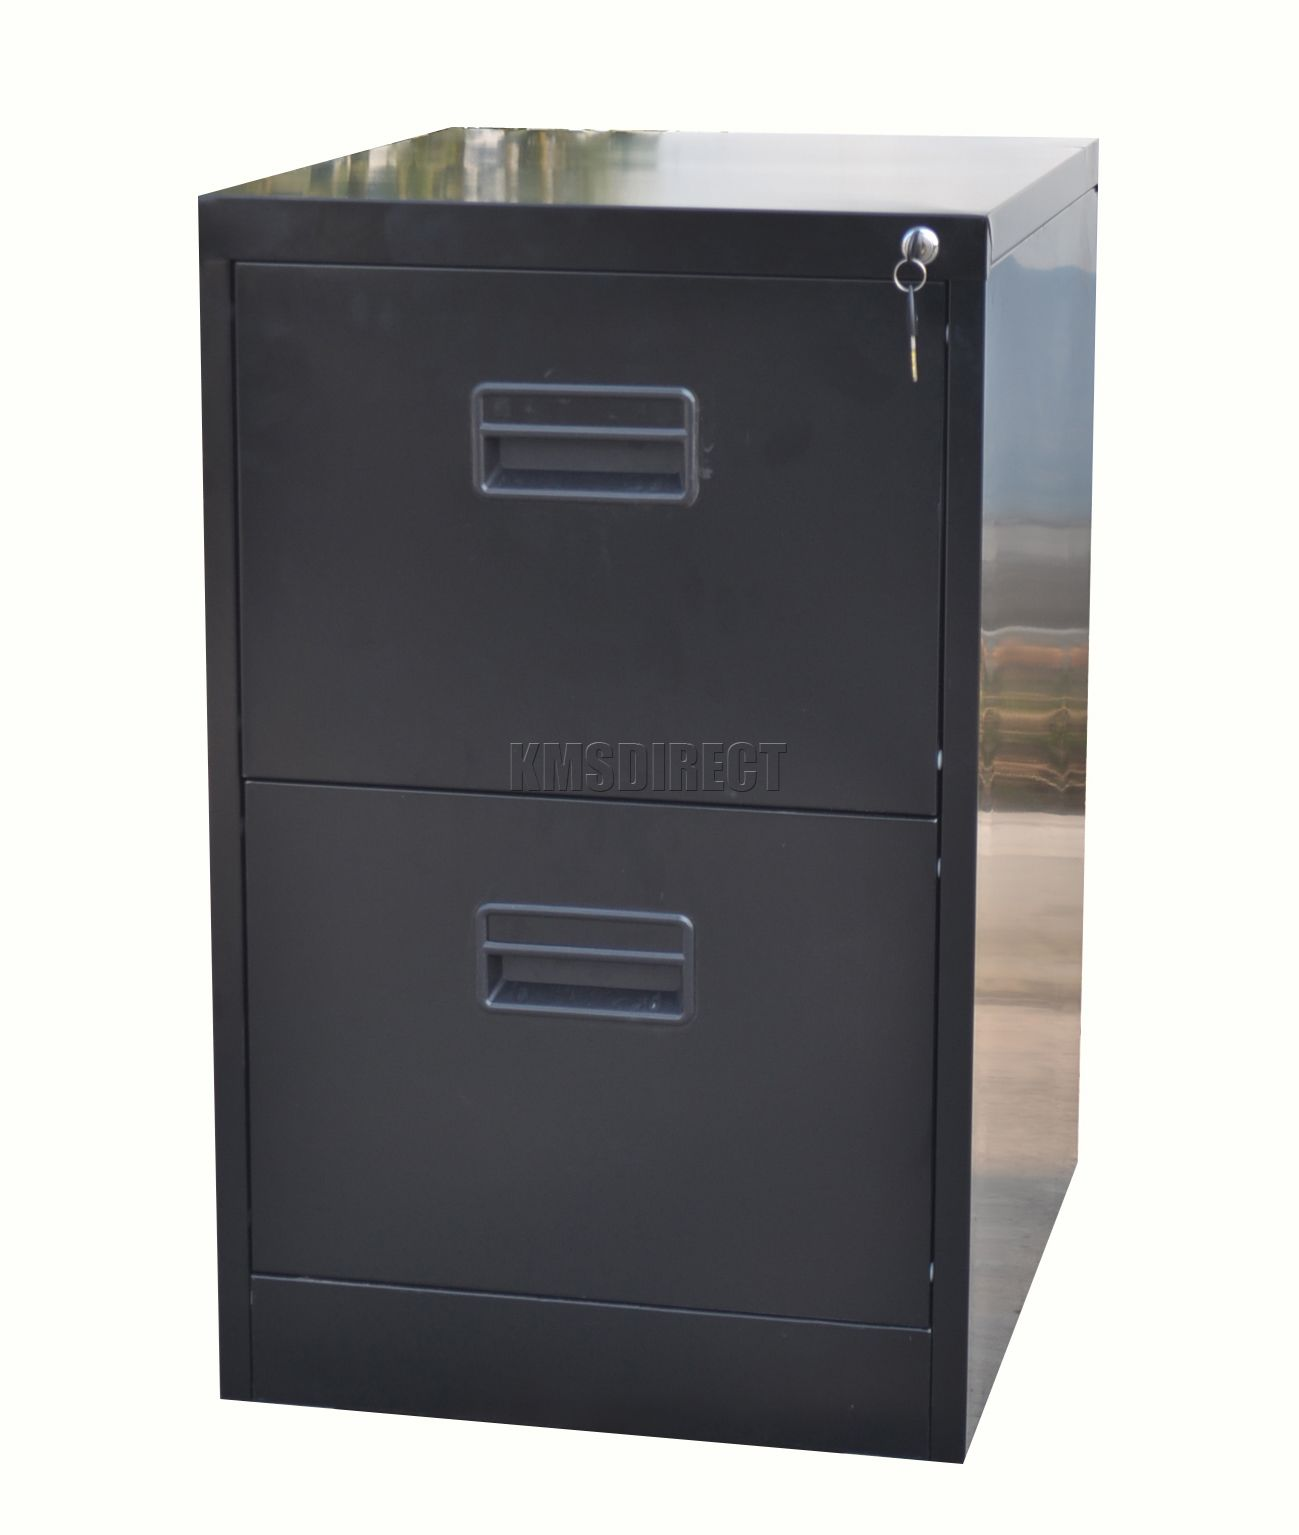 2 Drawer File Cabinet Home Office Filing Cabinet 2 Drawer A4 File Storage Metal